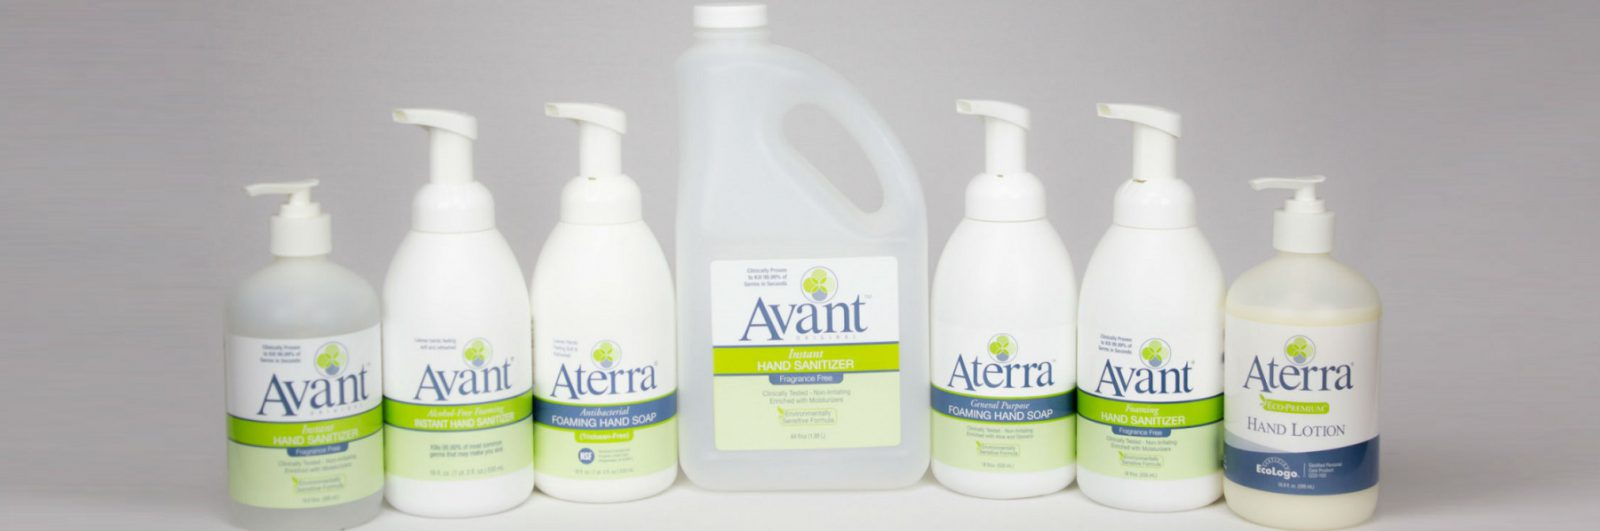 Avant and Aterra hand lotion, sanitizer and soap